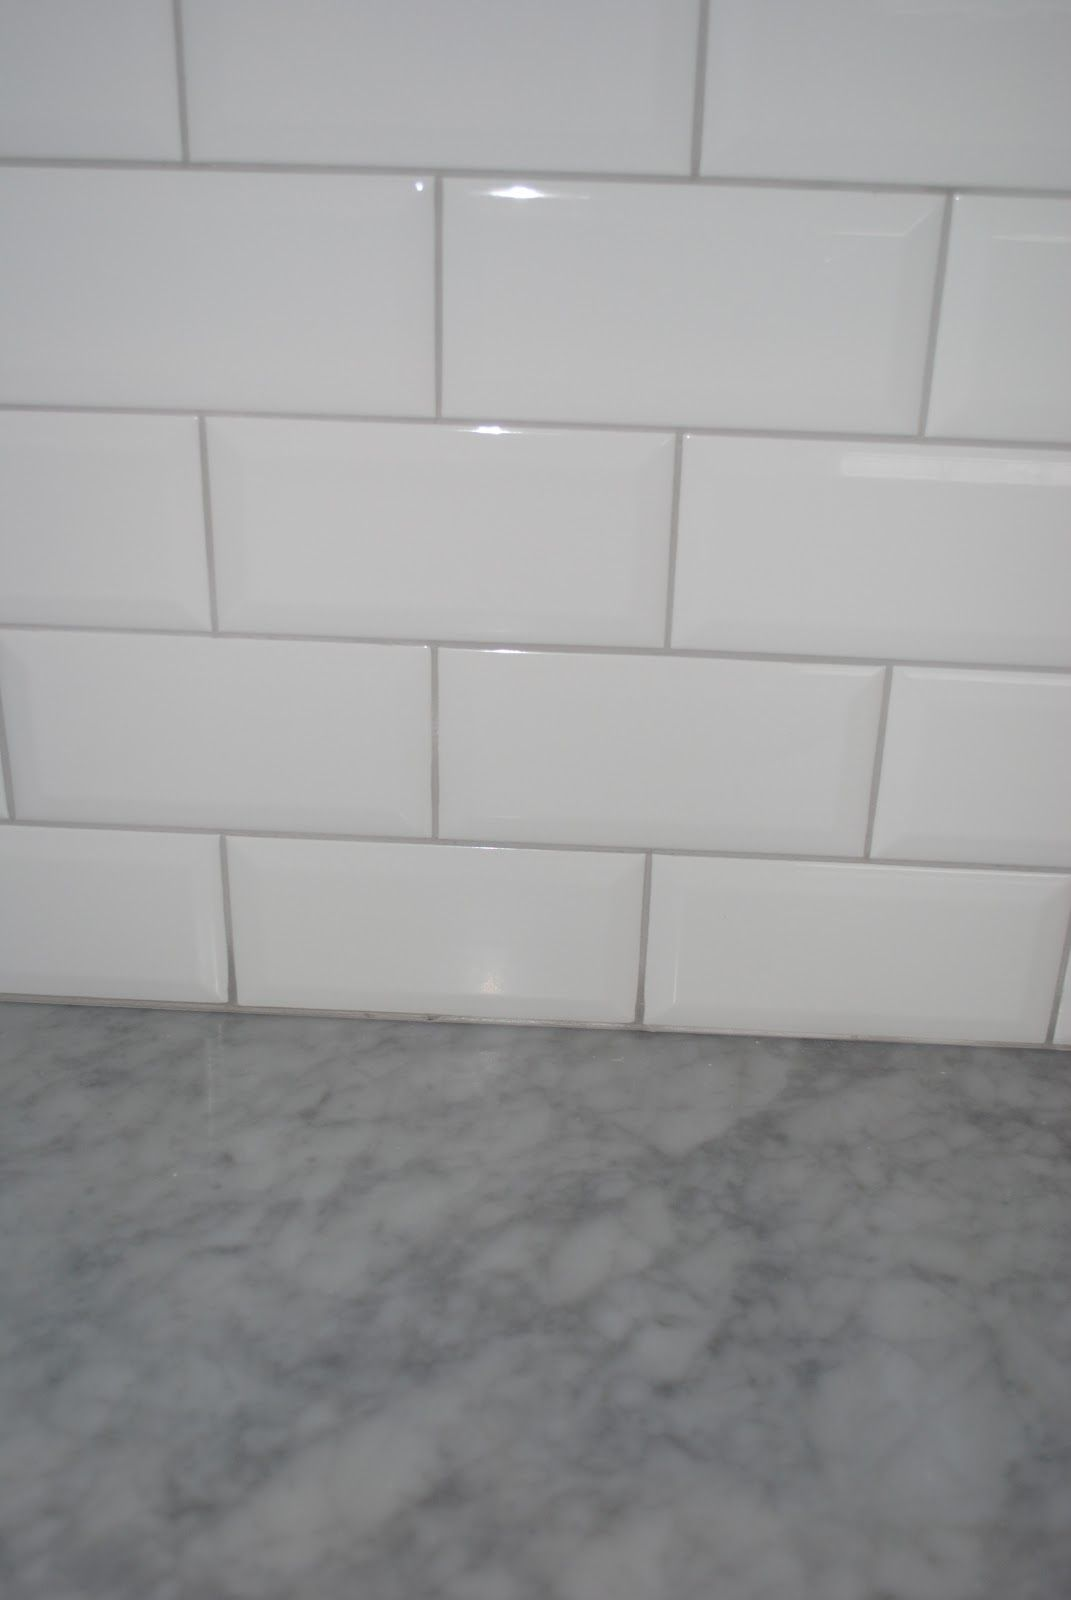 - Tiles Going In Tomorrow-should I Change Grout? - Kitchens Forum